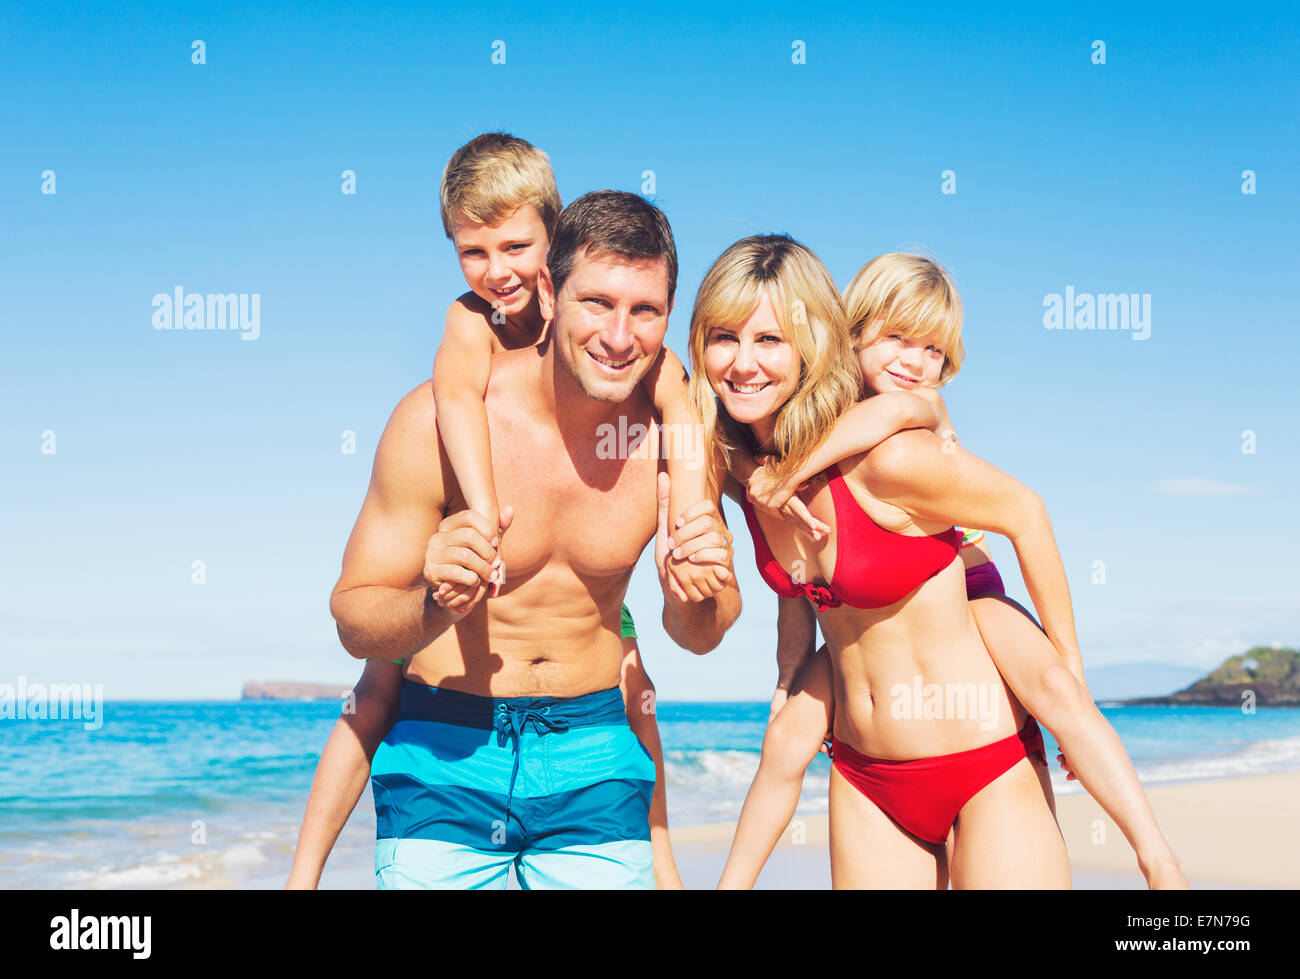 Happy Family Having Fun on the Beach Stock Photo